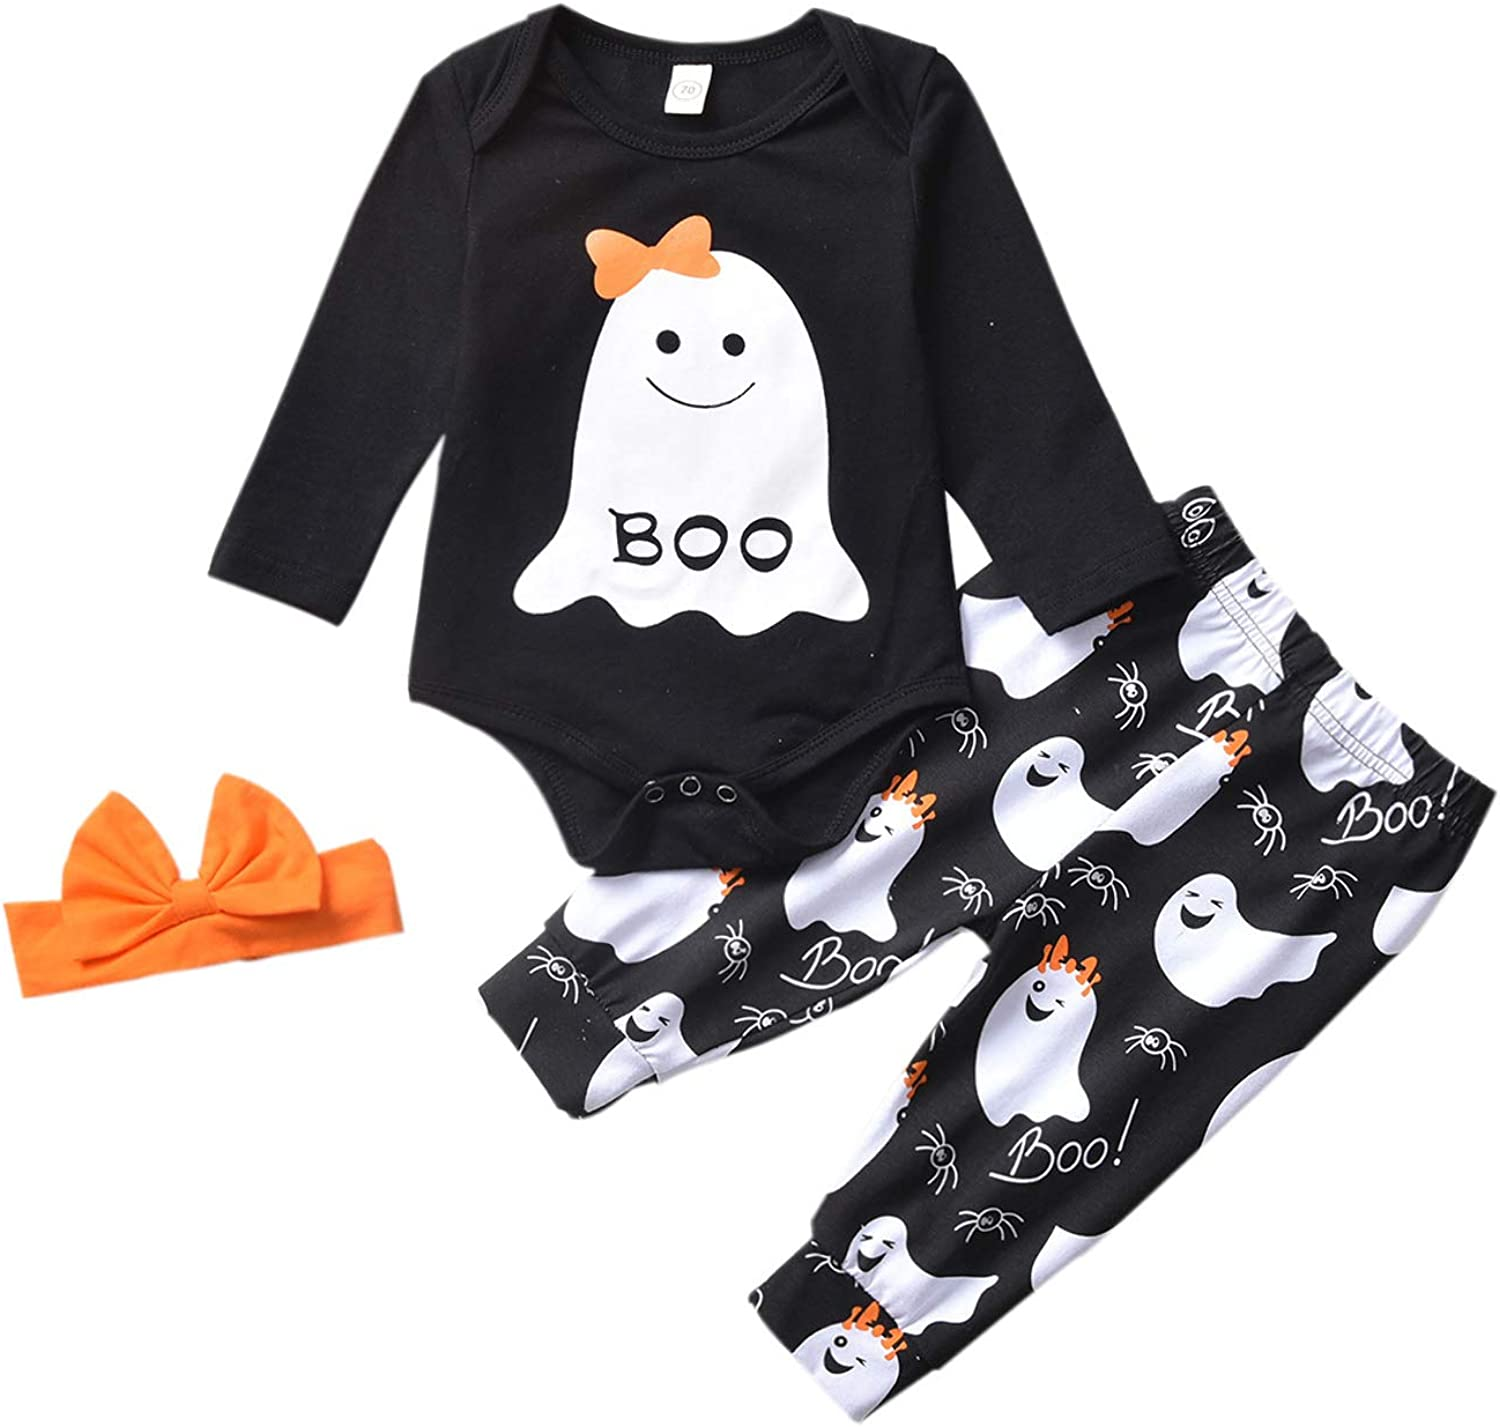 Newborn Baby Boy My First Halloween Outfit Skull Romper Top Ghost Pants with Hat 3Pcs Clothes Set 0-24M